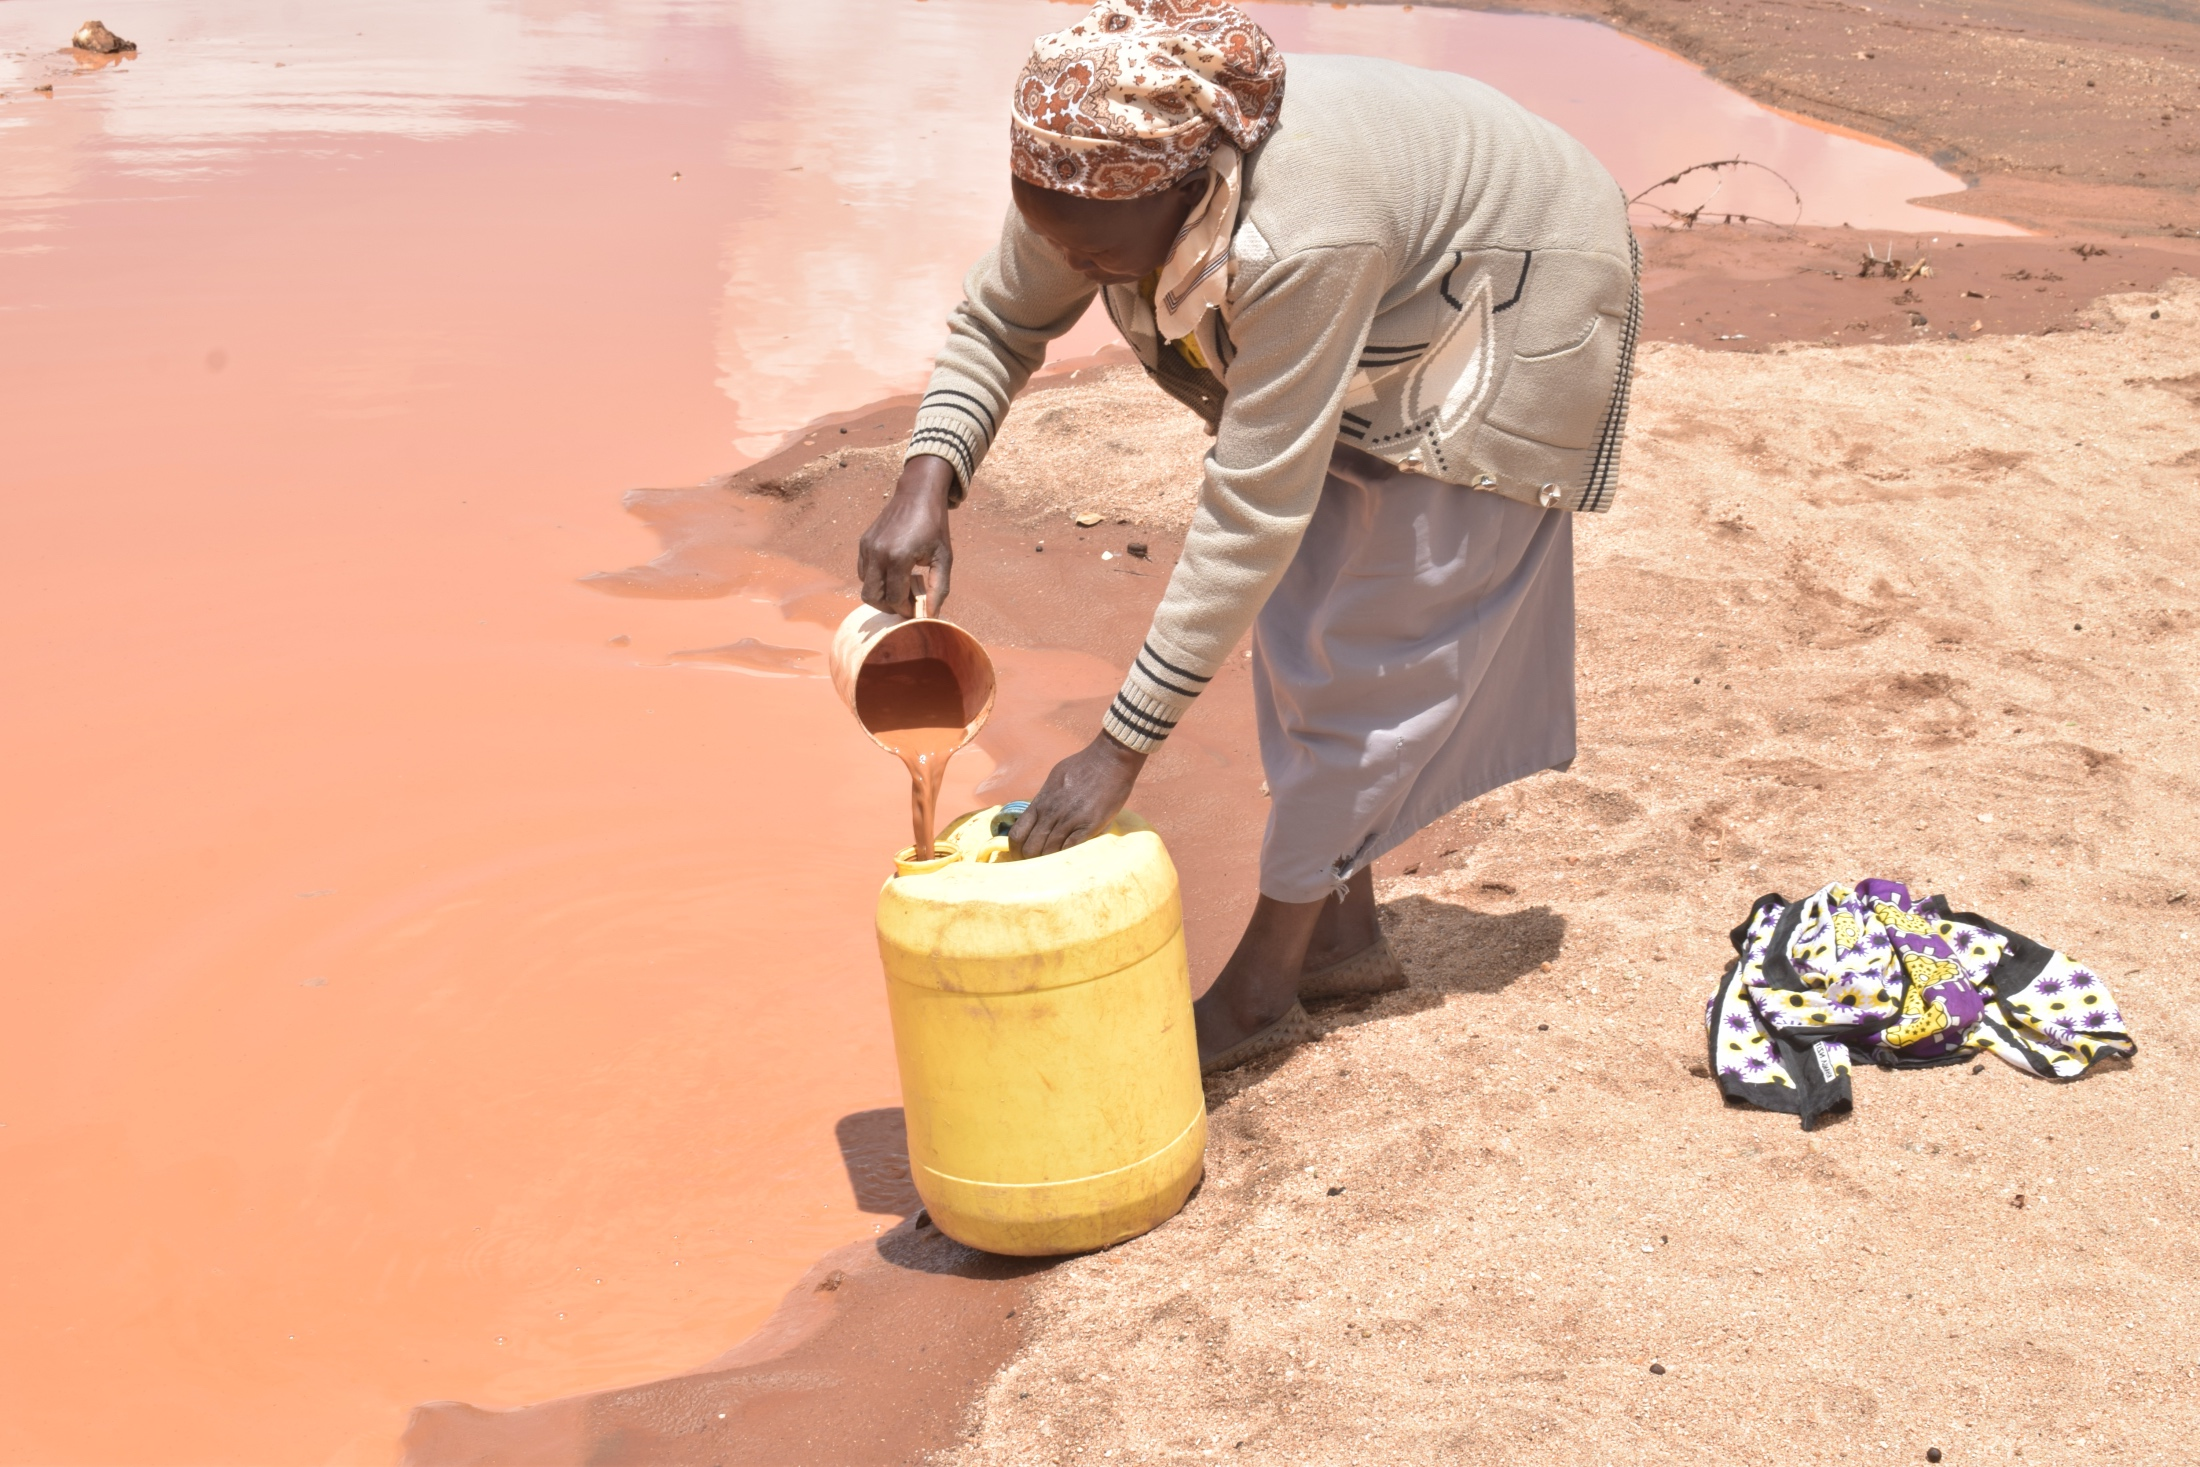 The Water Project : kenya20302-20303-filling-container-with-water